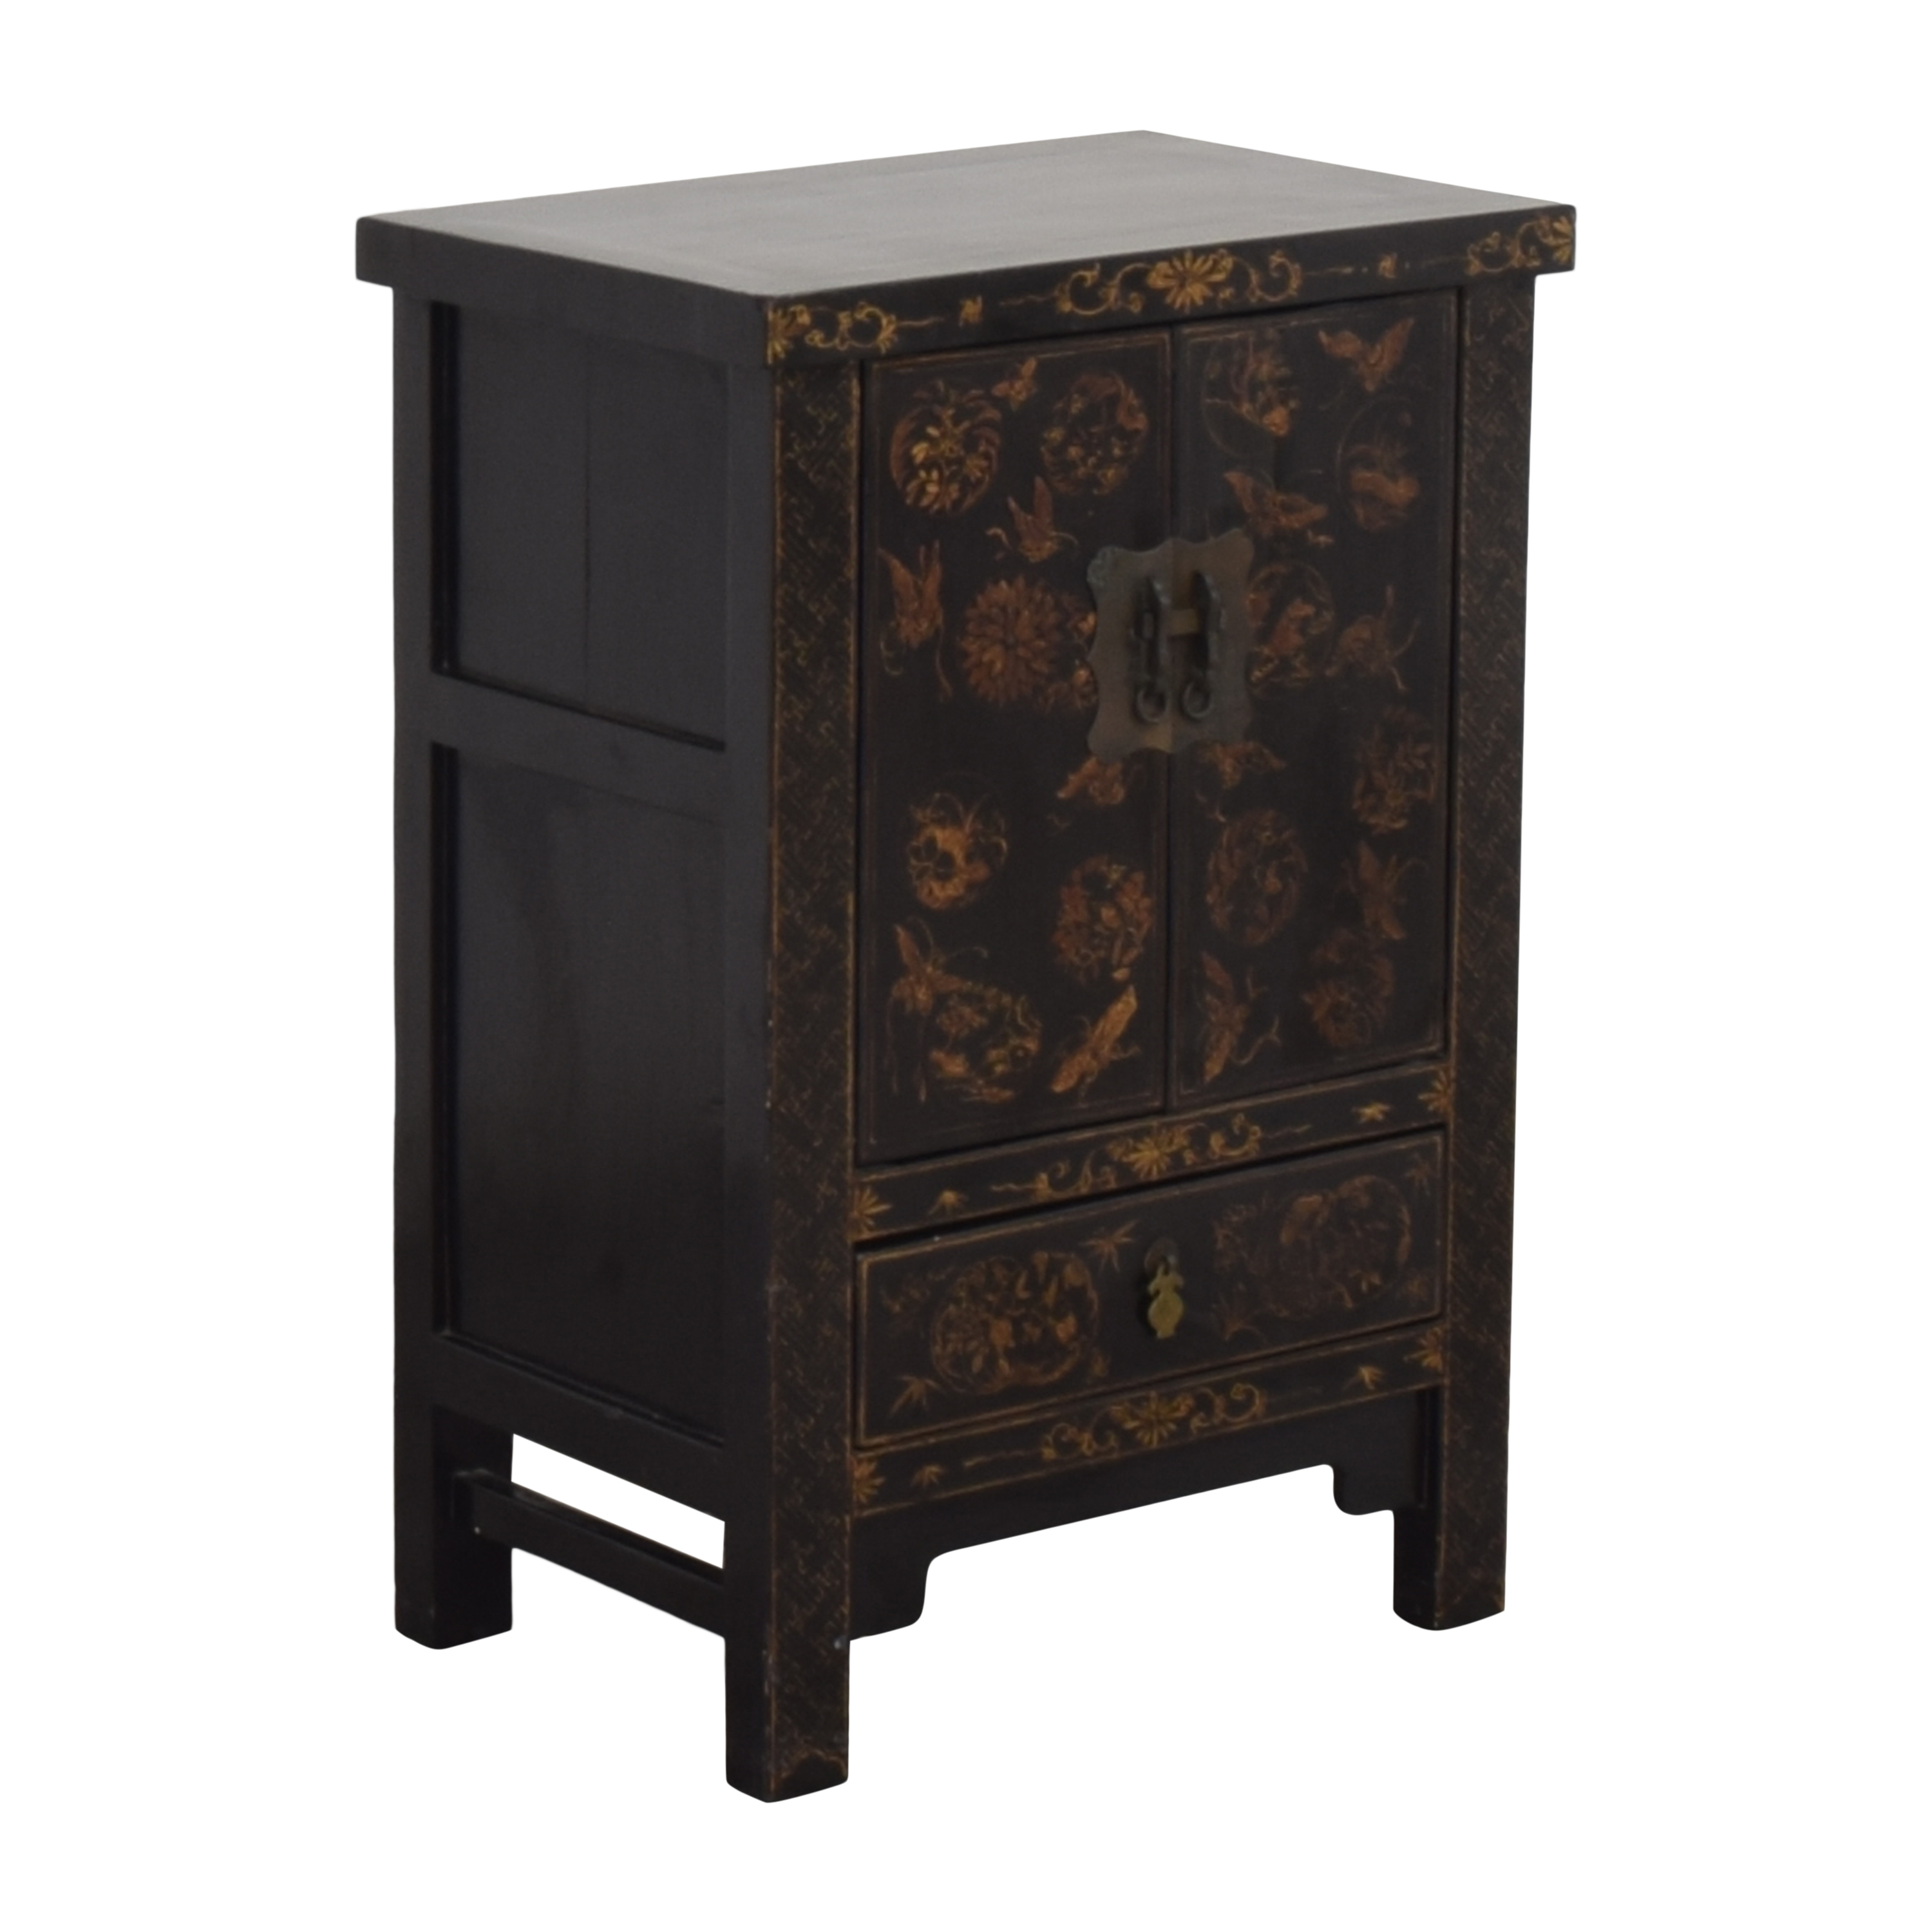 Japanese-Style End Table Cabinet black